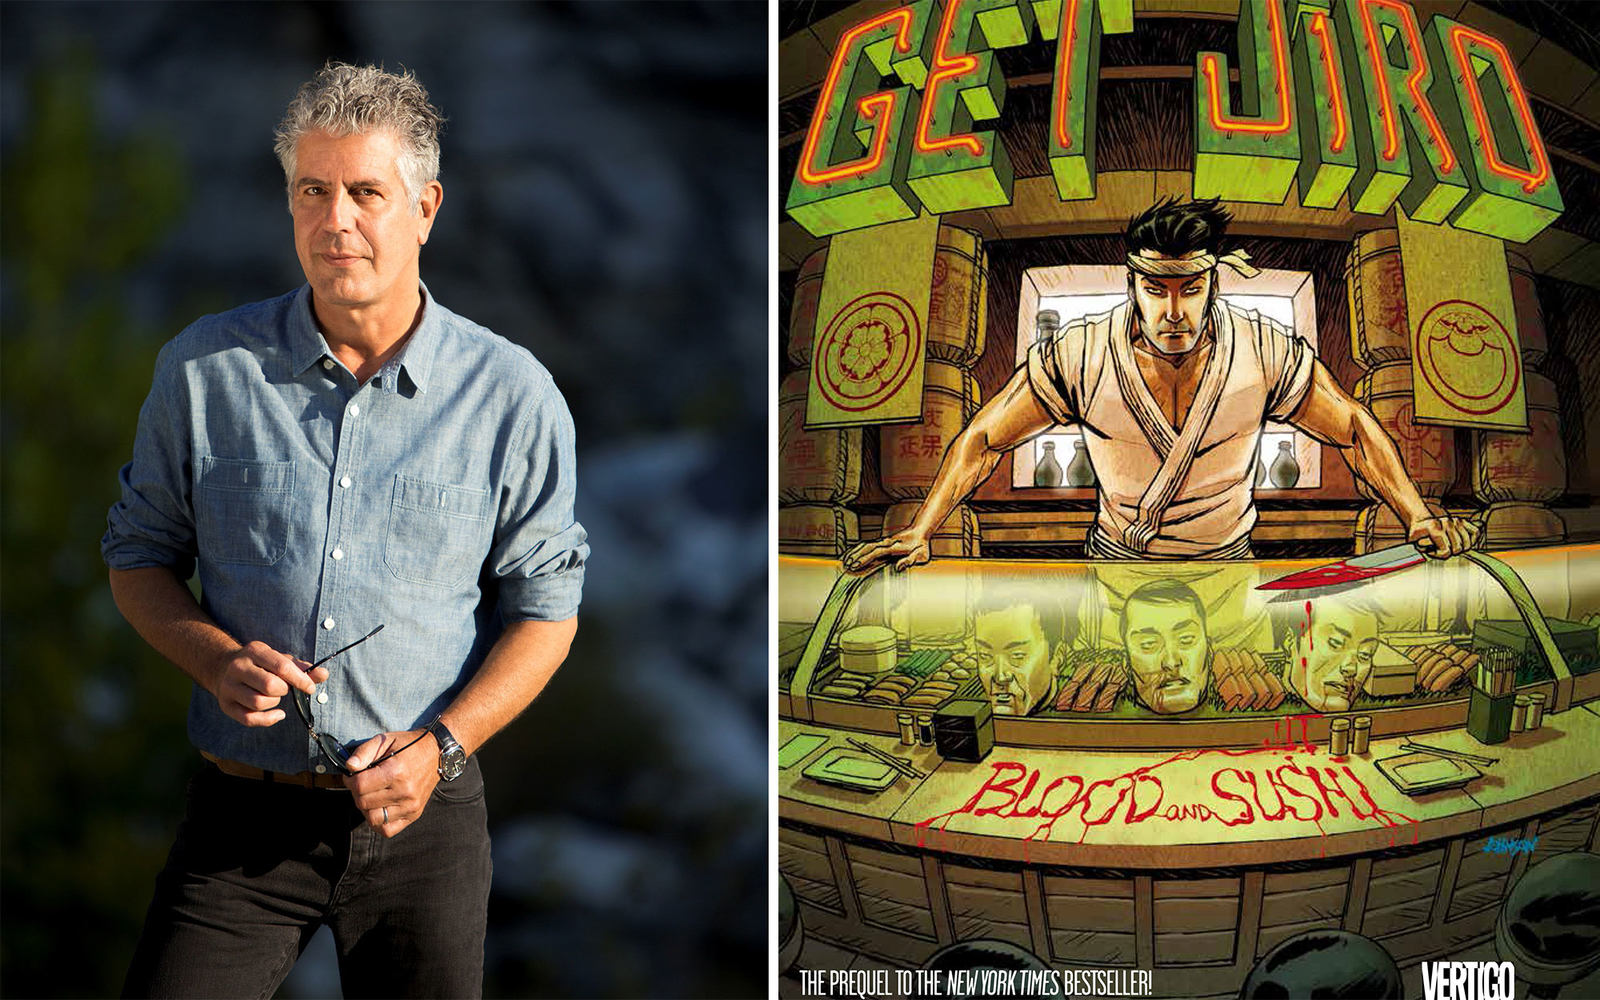 Anthony Bourdain Dishes on Sushi, Underrated Cities, and his New Book